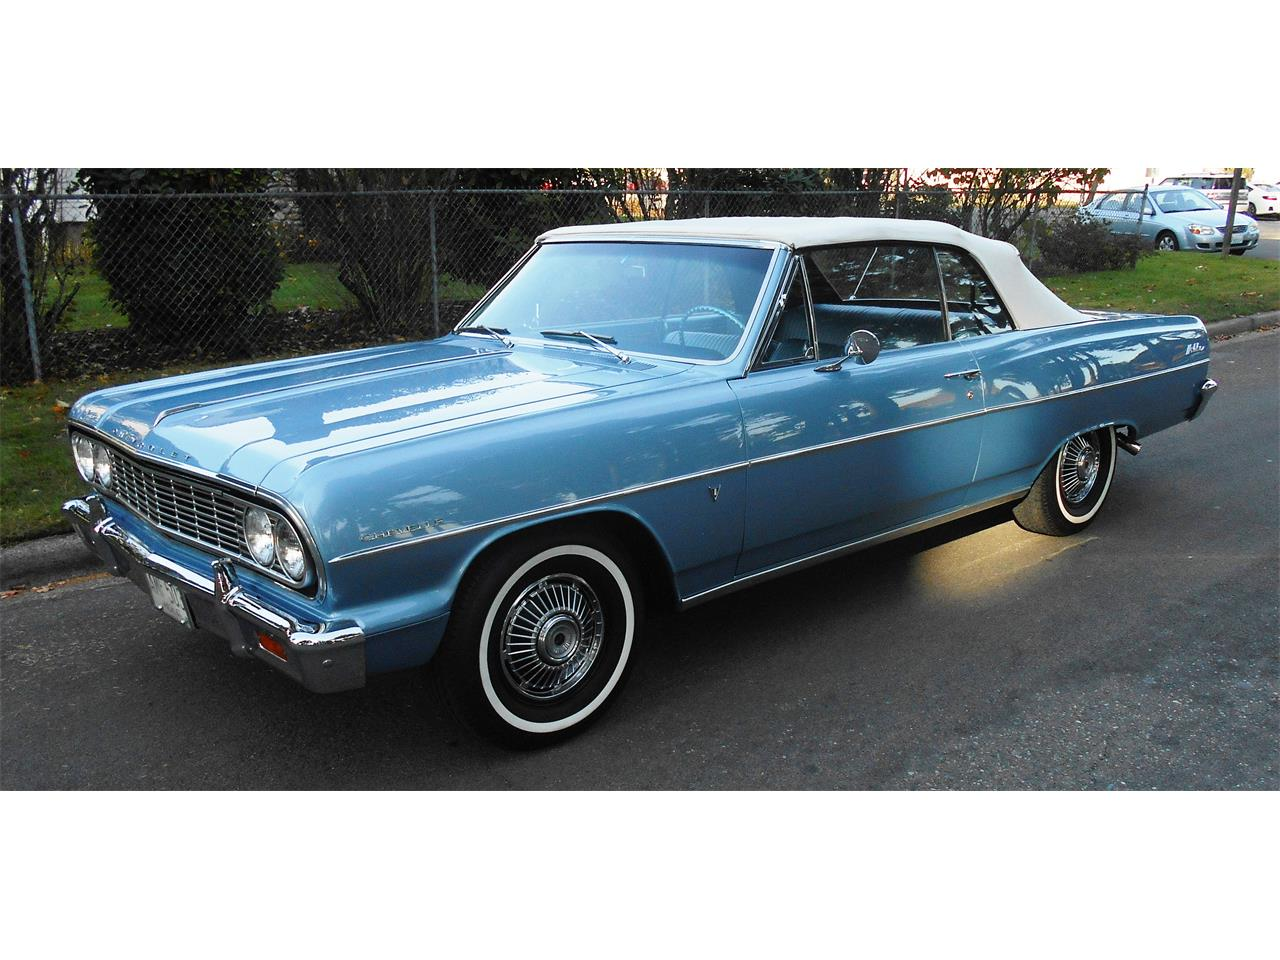 1964 Chevrolet Chevelle Malibu (CC-1295937) for sale in Tacoma, Washington